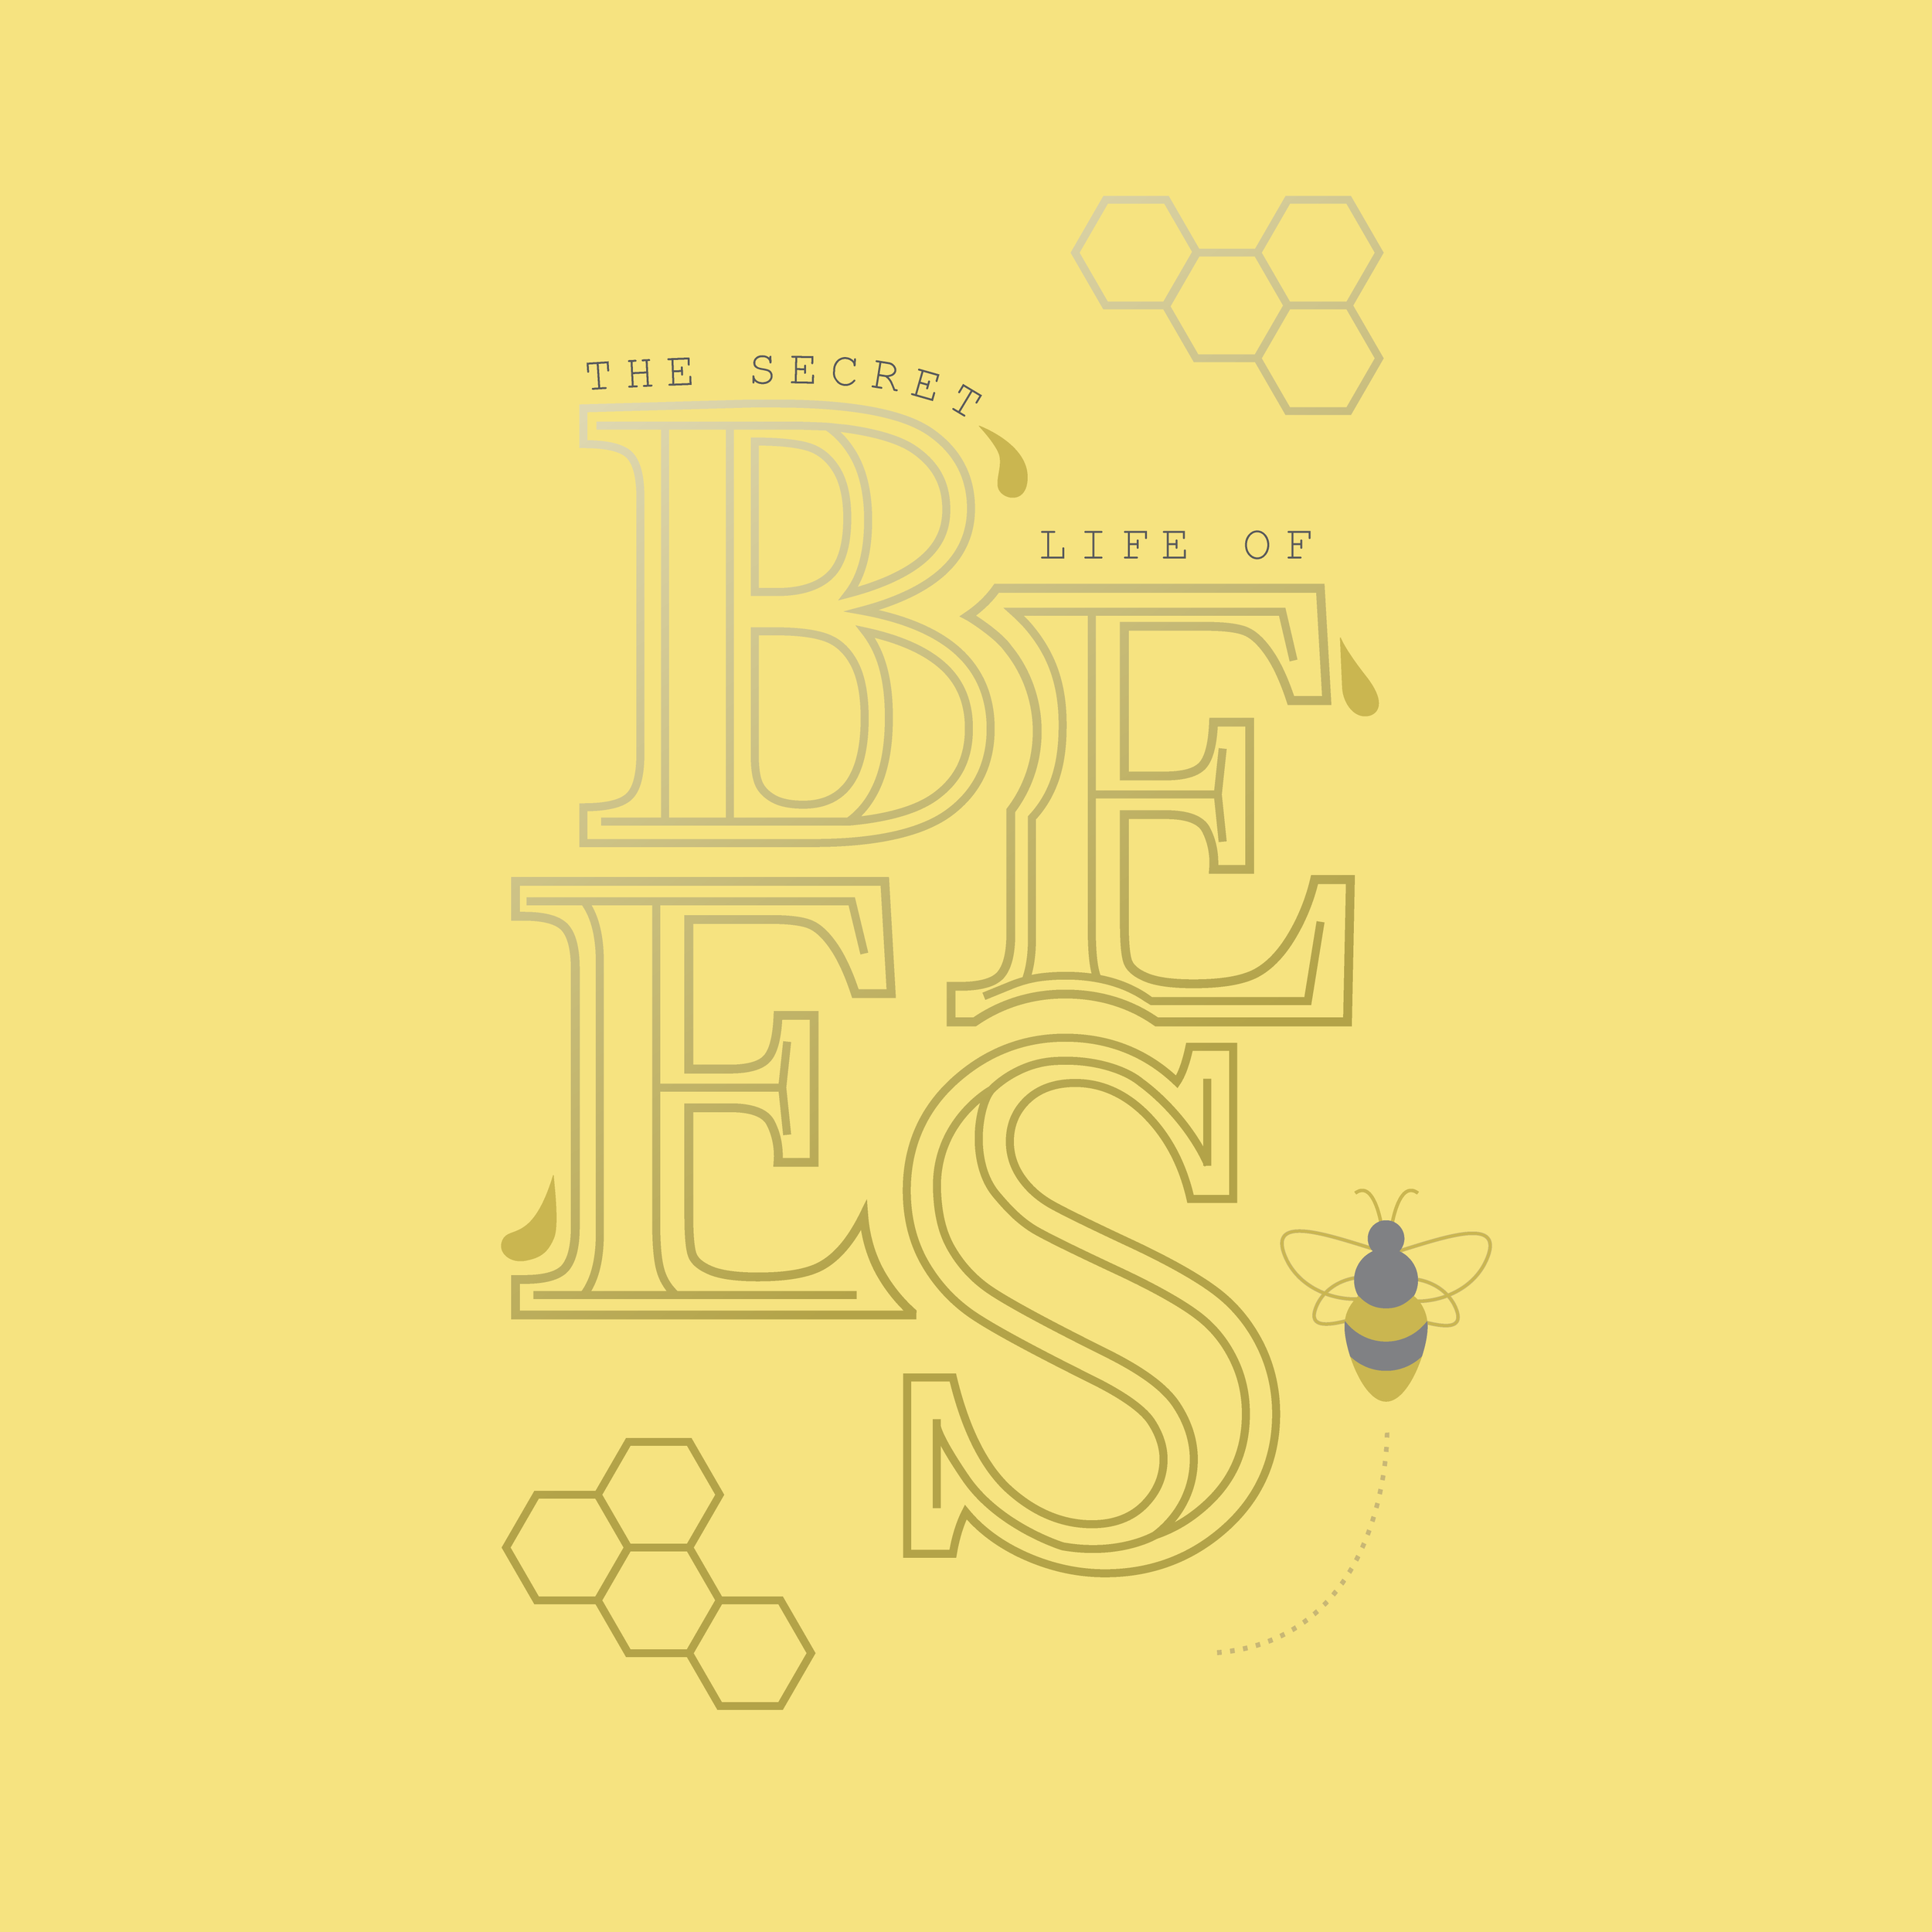 bees-11.png